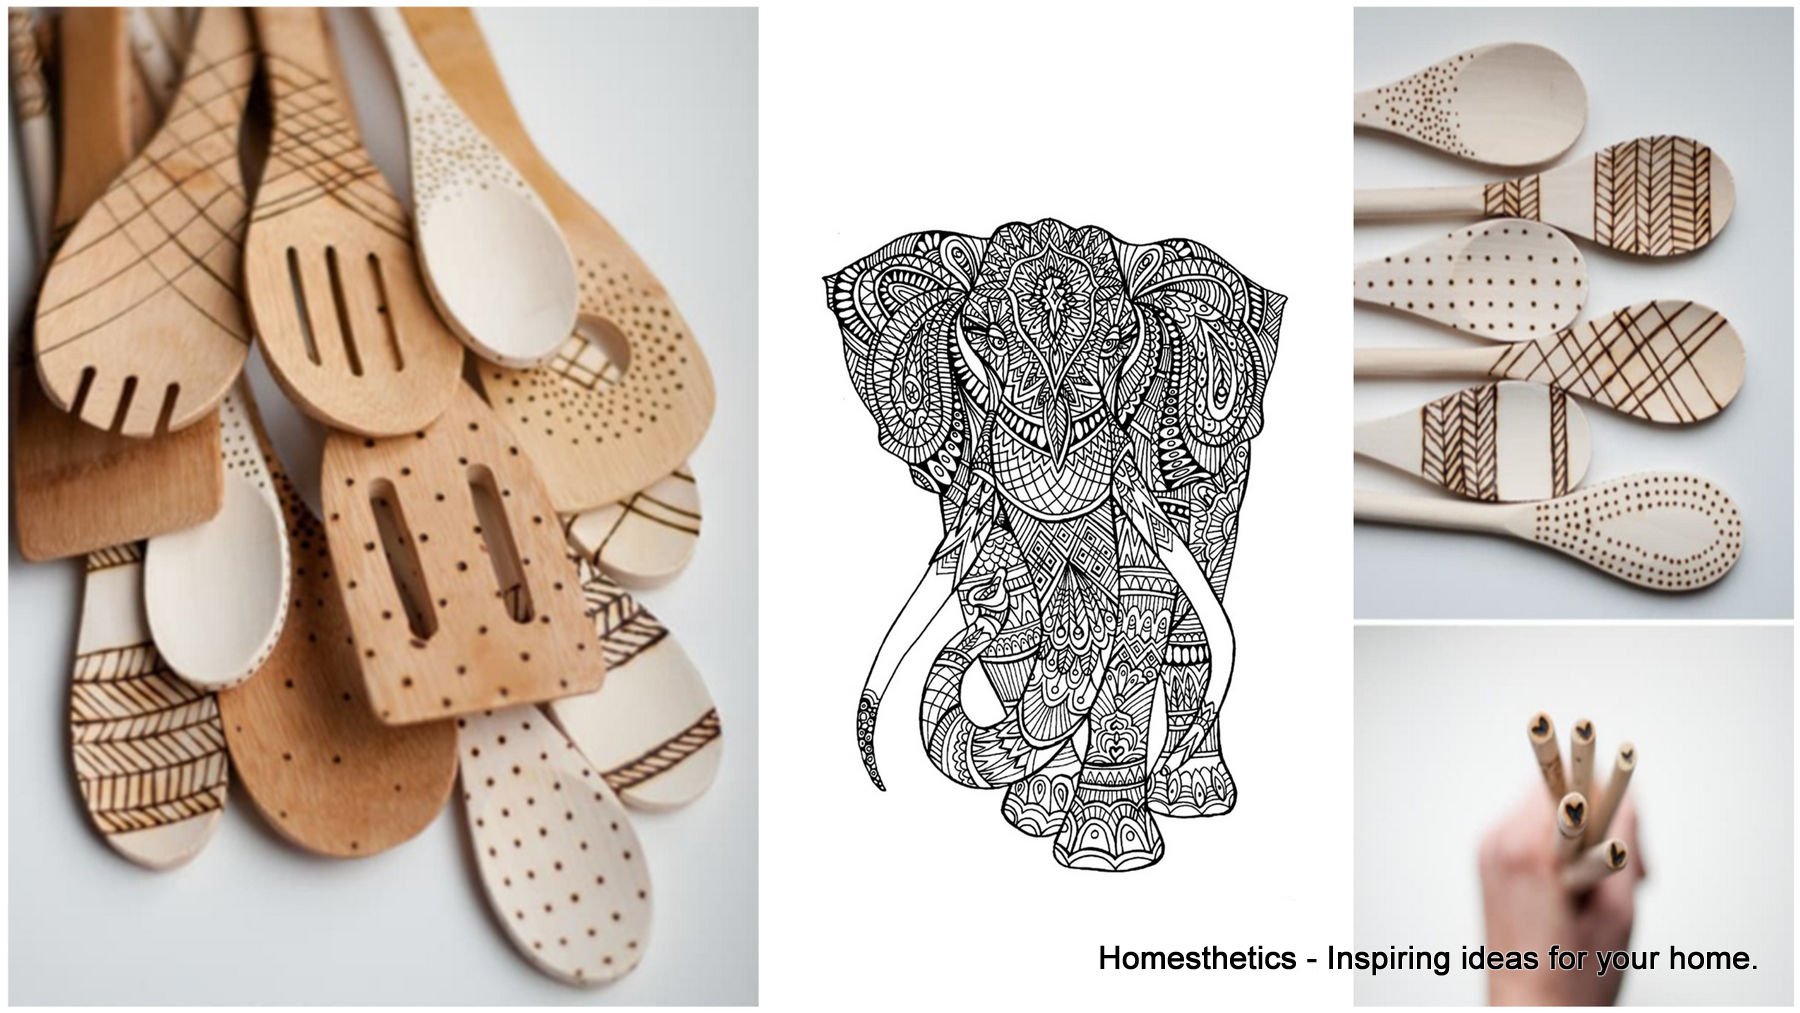 28+ Epic Free Printable Wood Burning Patterns | Homesthetics